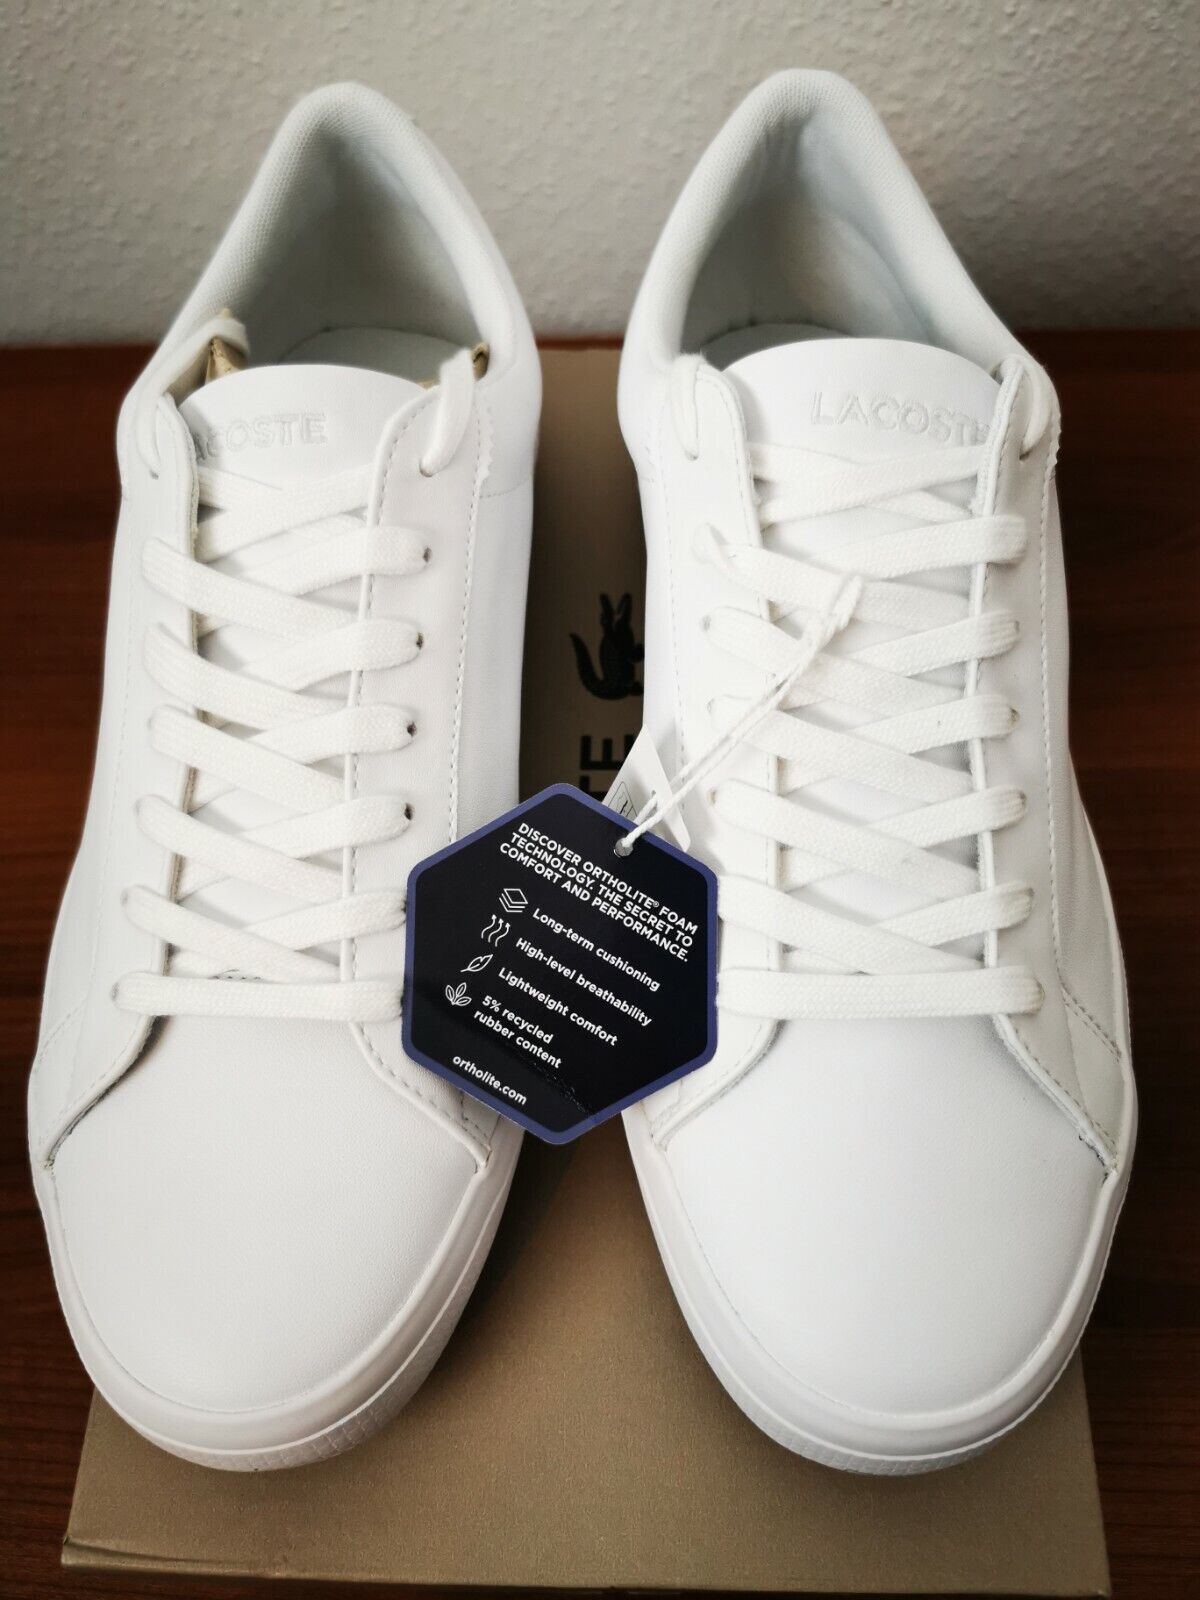 Lacoste Mens Lerond shoes in size 42,5 NEW & OVP